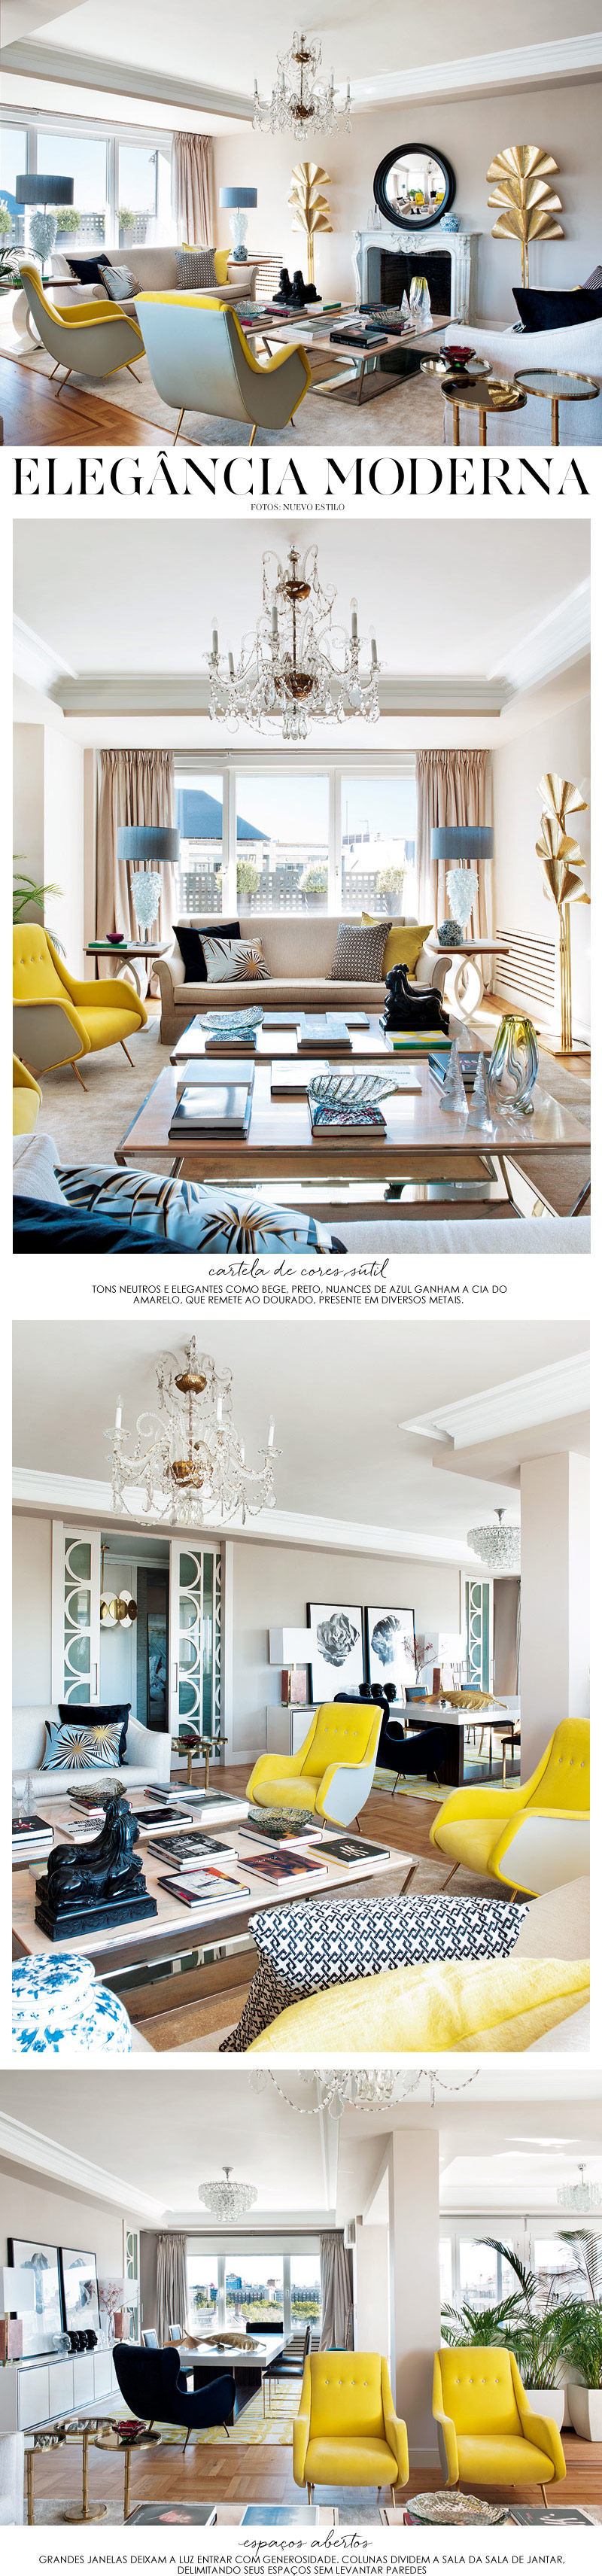 living-gazette-barbara-resende-decor-tour-apto-elegante-moderno-art-deco